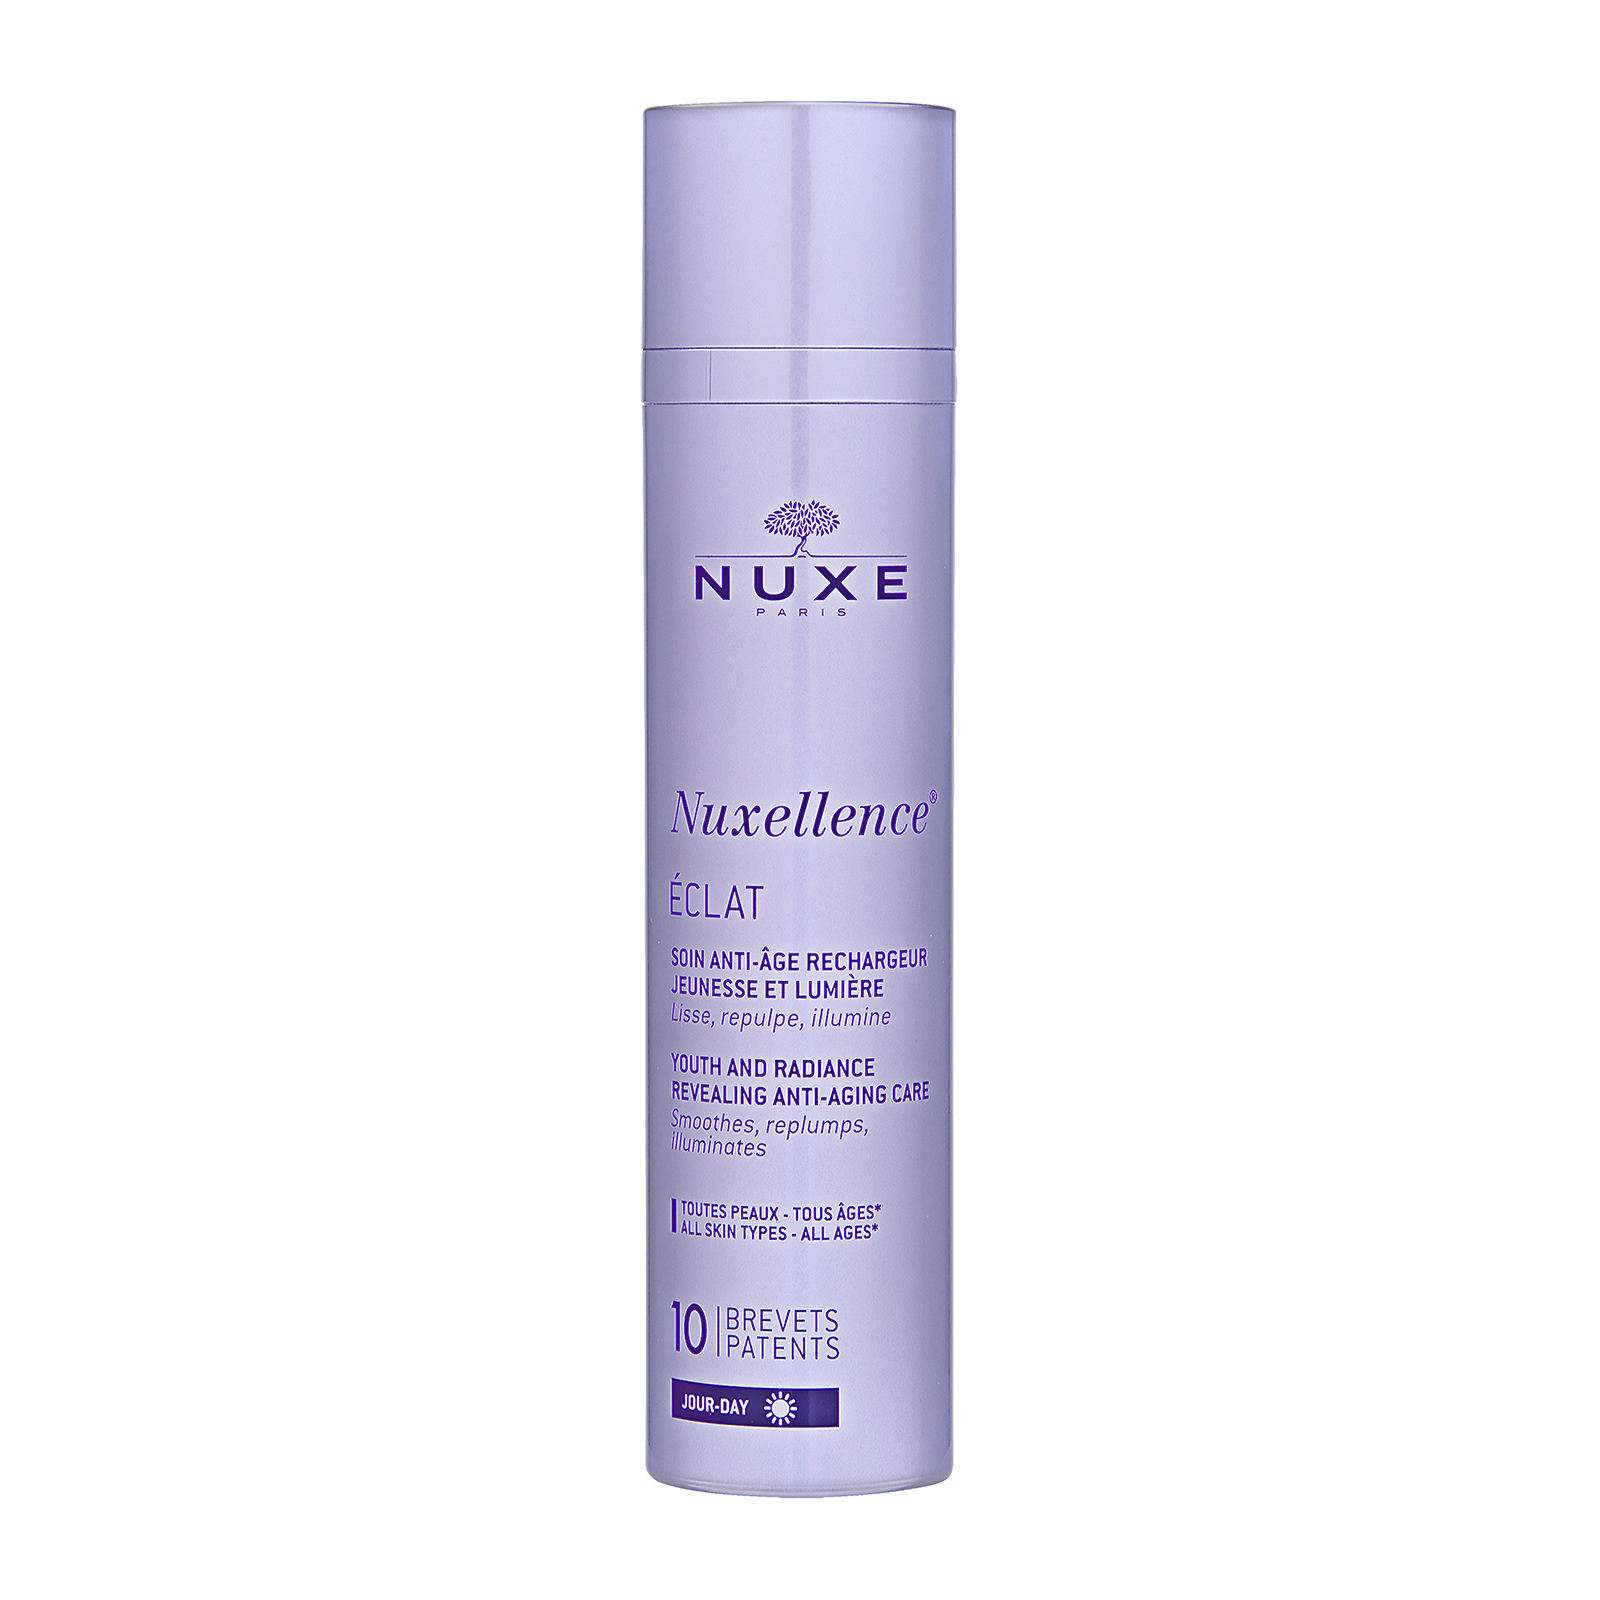 NUXE Nuxellence Jeunesse  Youth And Radiance Revealing Care 1.7oz, 50ml from Cosme-De.com